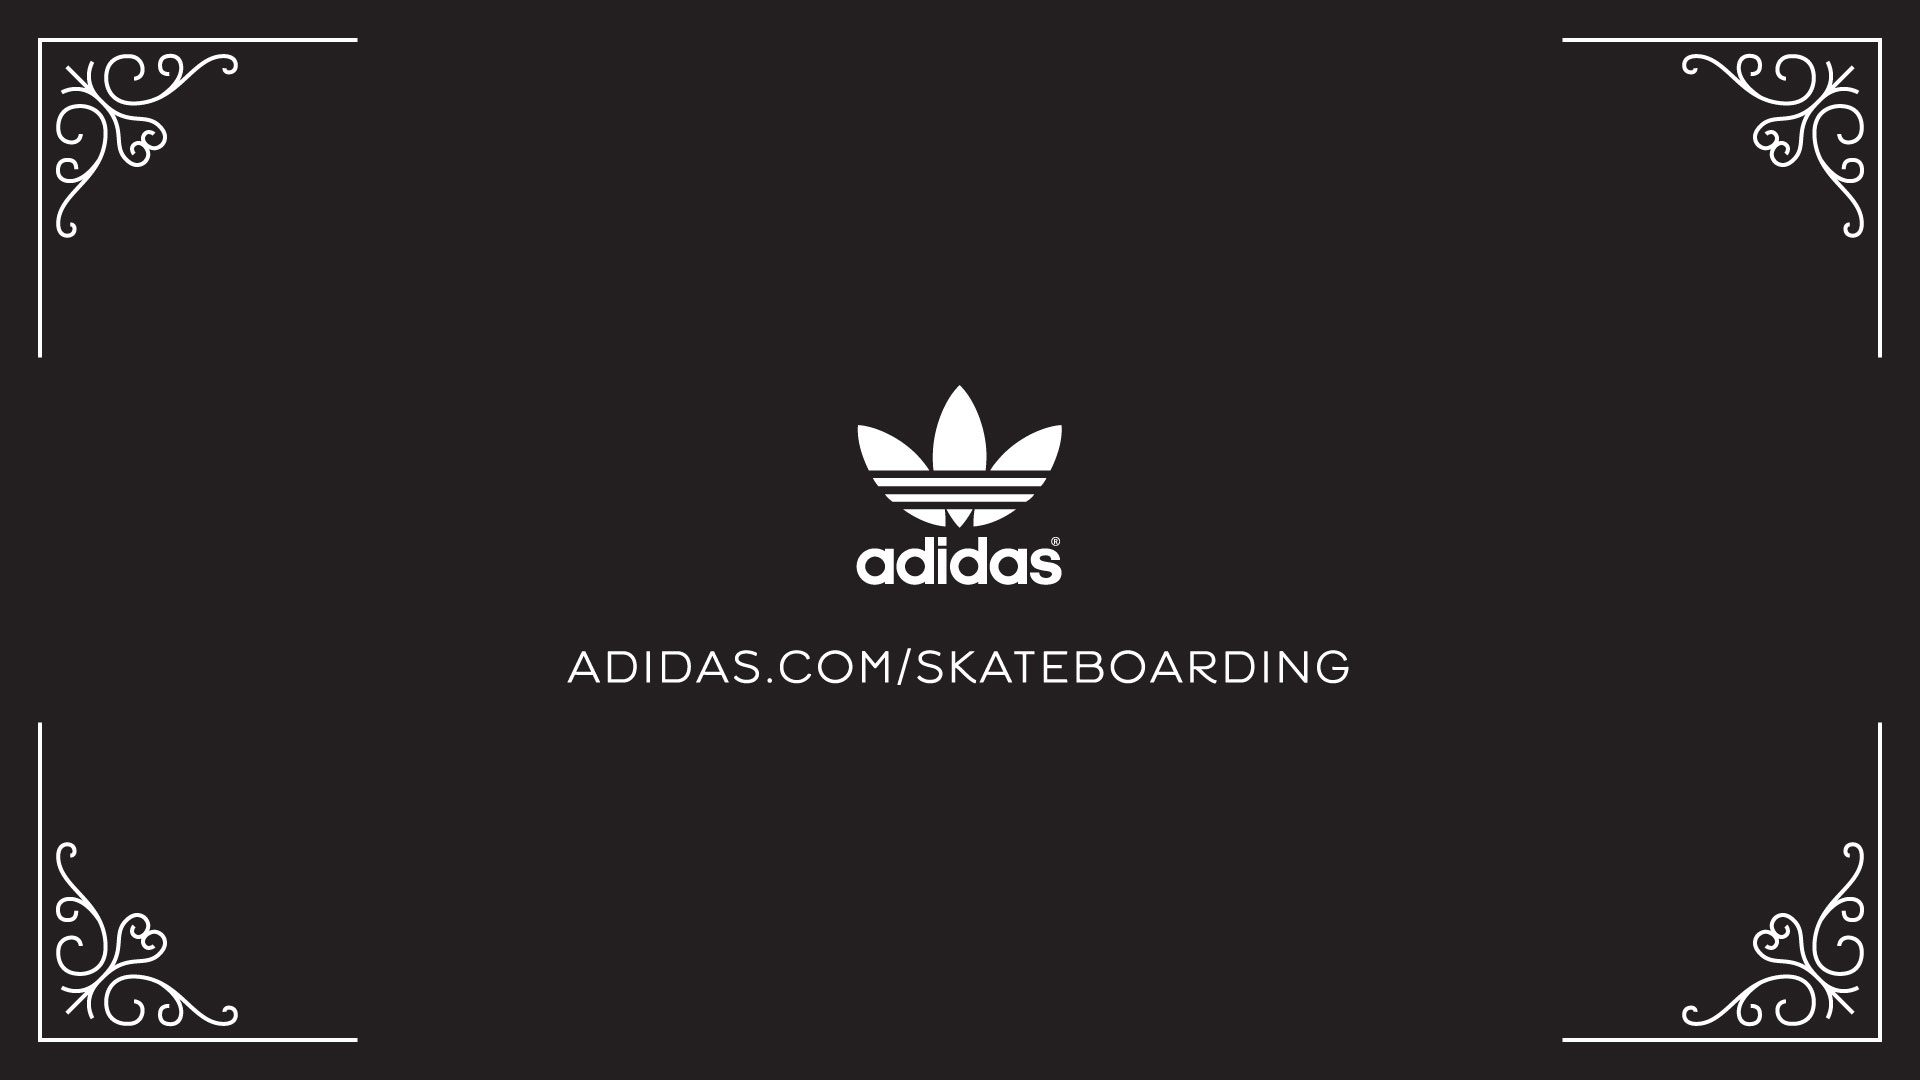 Adidas_RaulNavarro_Screen6